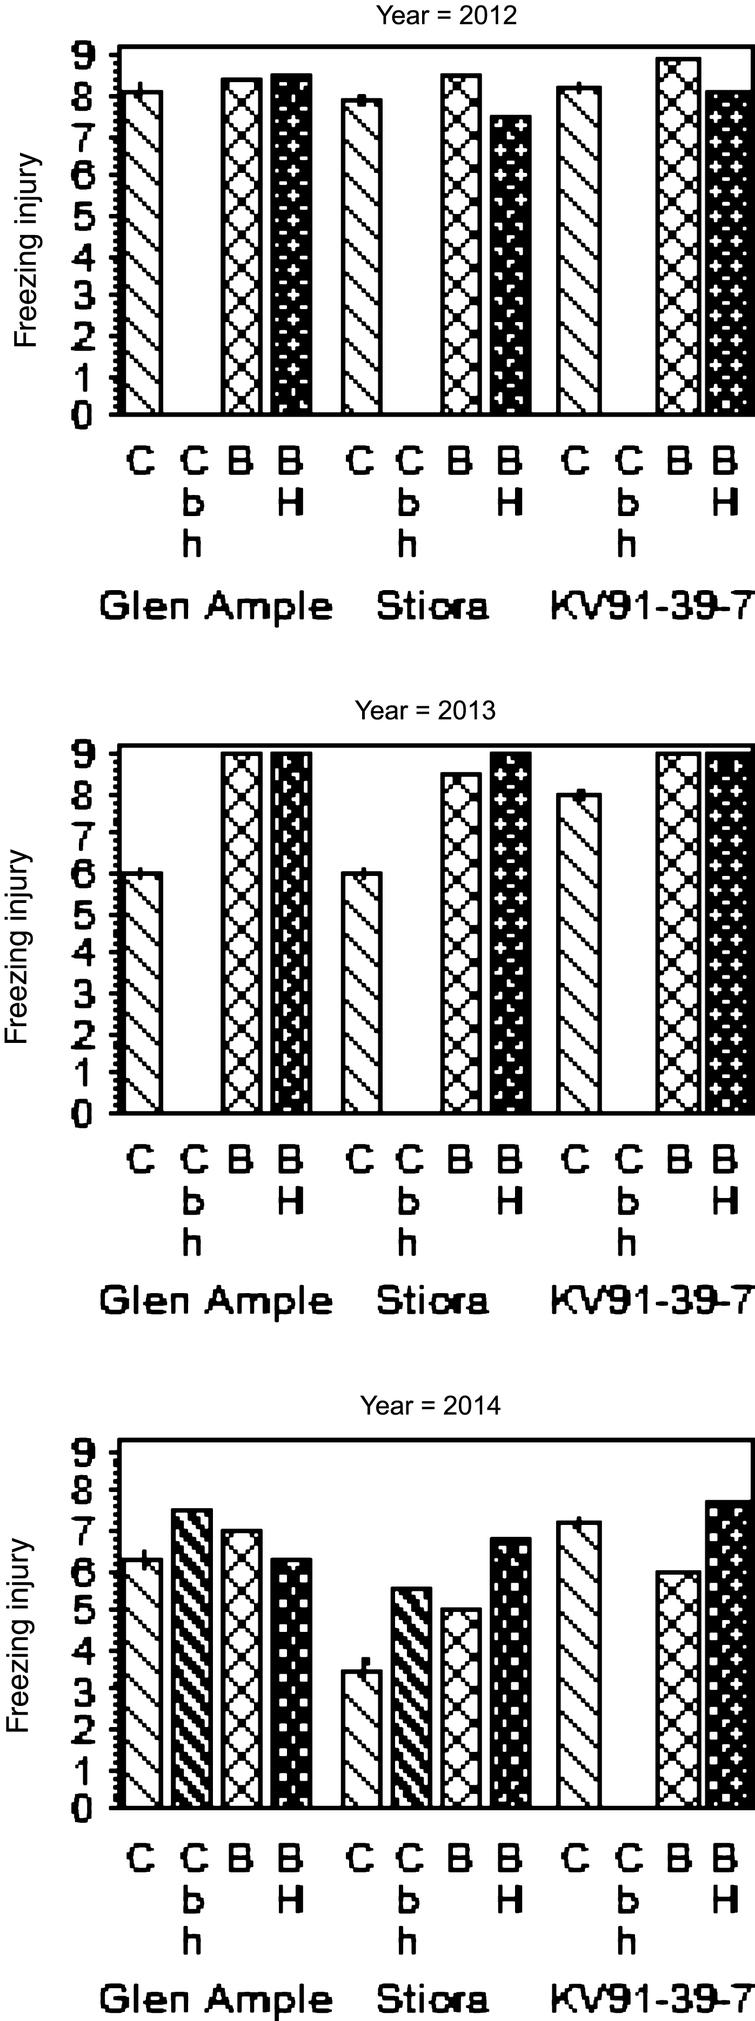 The effect of low-temperature stress avoidance treatments on freezing injury (rated 0–9 where 0 is dead buds and 9 fresh buds), in cane buds of three raspberry cultivars in three years in mid-Norway. C = erect canes the whole year (Control = treatment D); Cbh = erect canes April–October 2014 at bent and heated plots; B = bent and covered plots with erect canes May–October; BH = bent and heated plots October–May. Cbh is similar to BH except that canes were raised into erect position approx. one month earlier than for BH. Bars on the top of the left column of each cultivar indicate standard error within the cultivar.